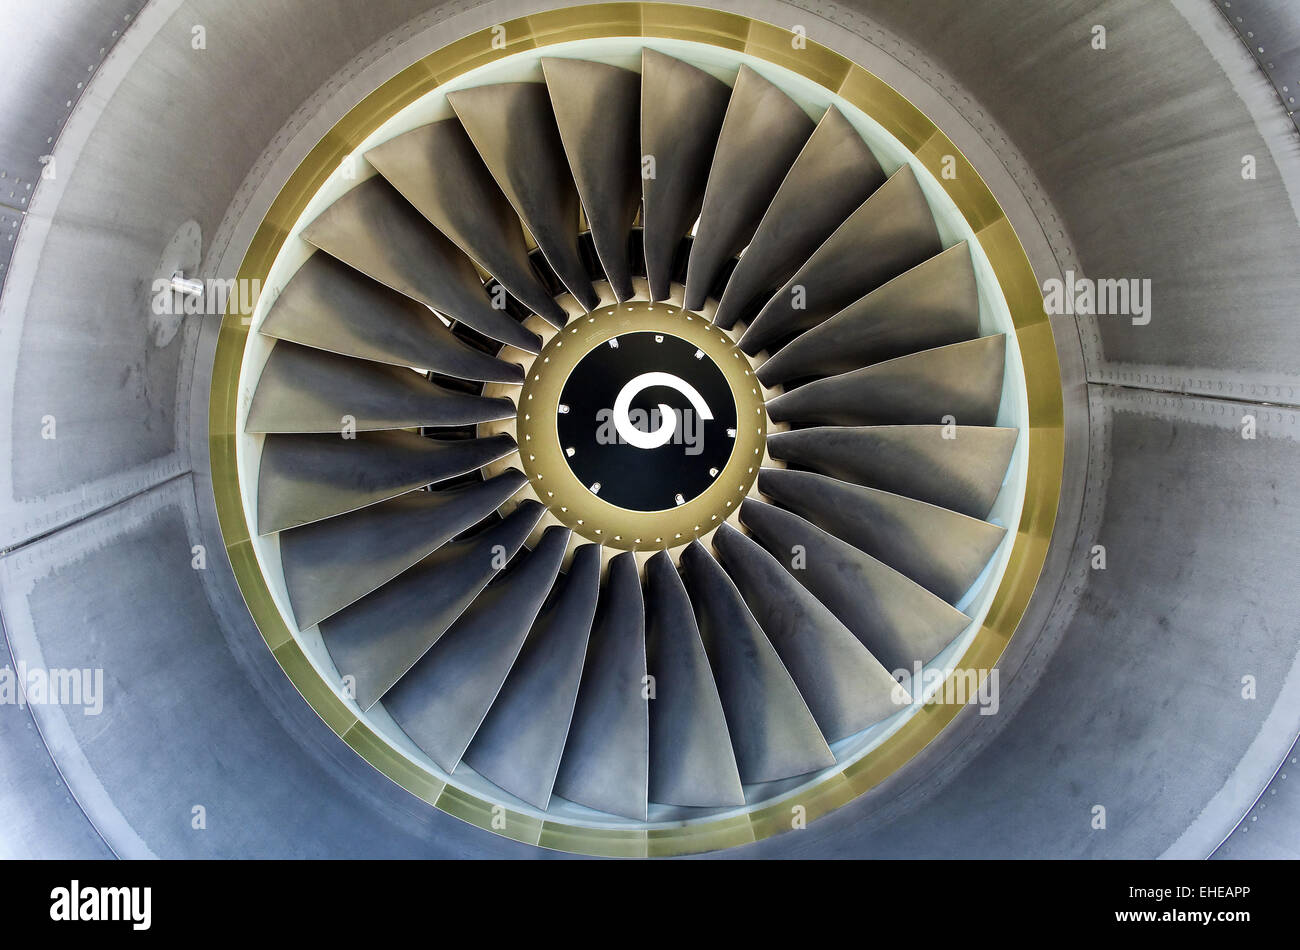 Jet engine detail. - Stock Image